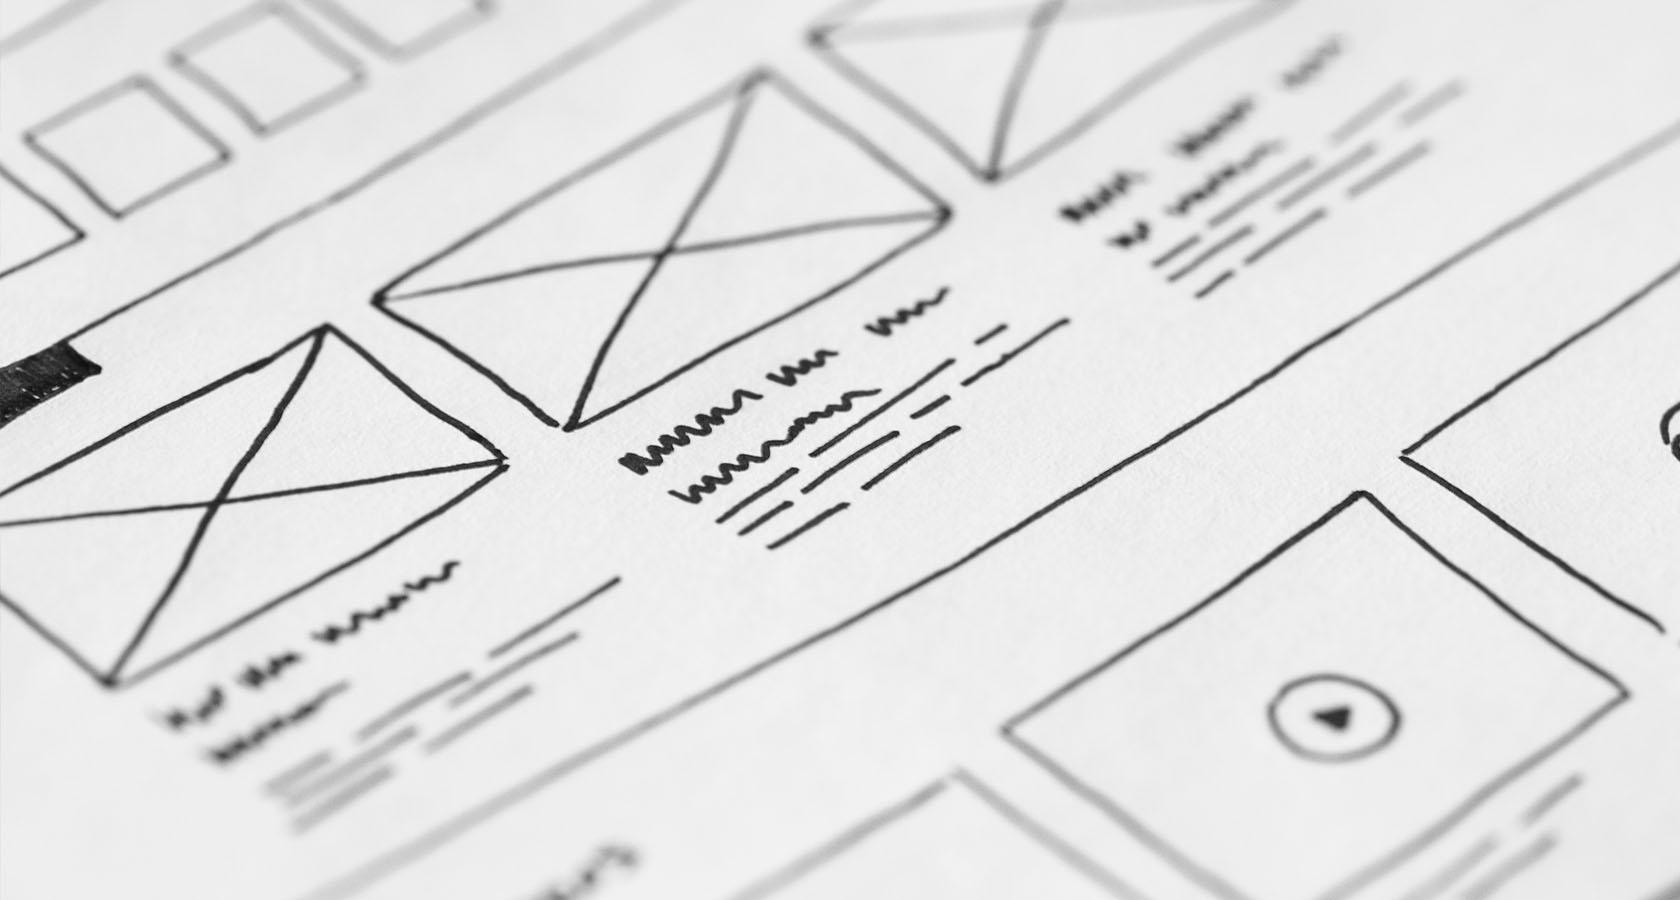 ui and ux wireframe sketching